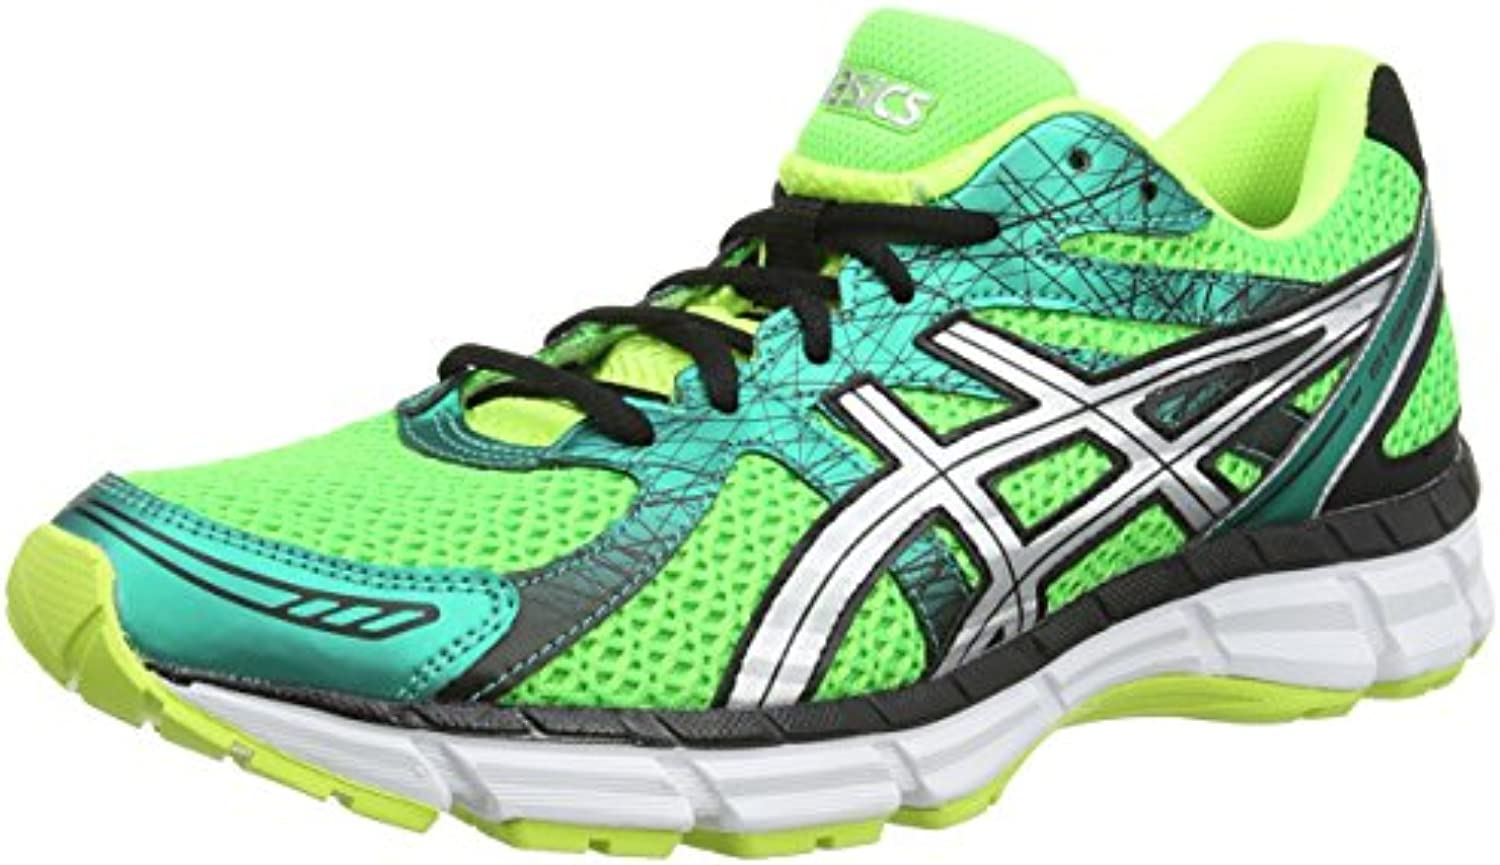 premium selection 469df 38be3 asics asics asics gel obéron 9, les chaussures de course b00qn3g94e parent  9284fc